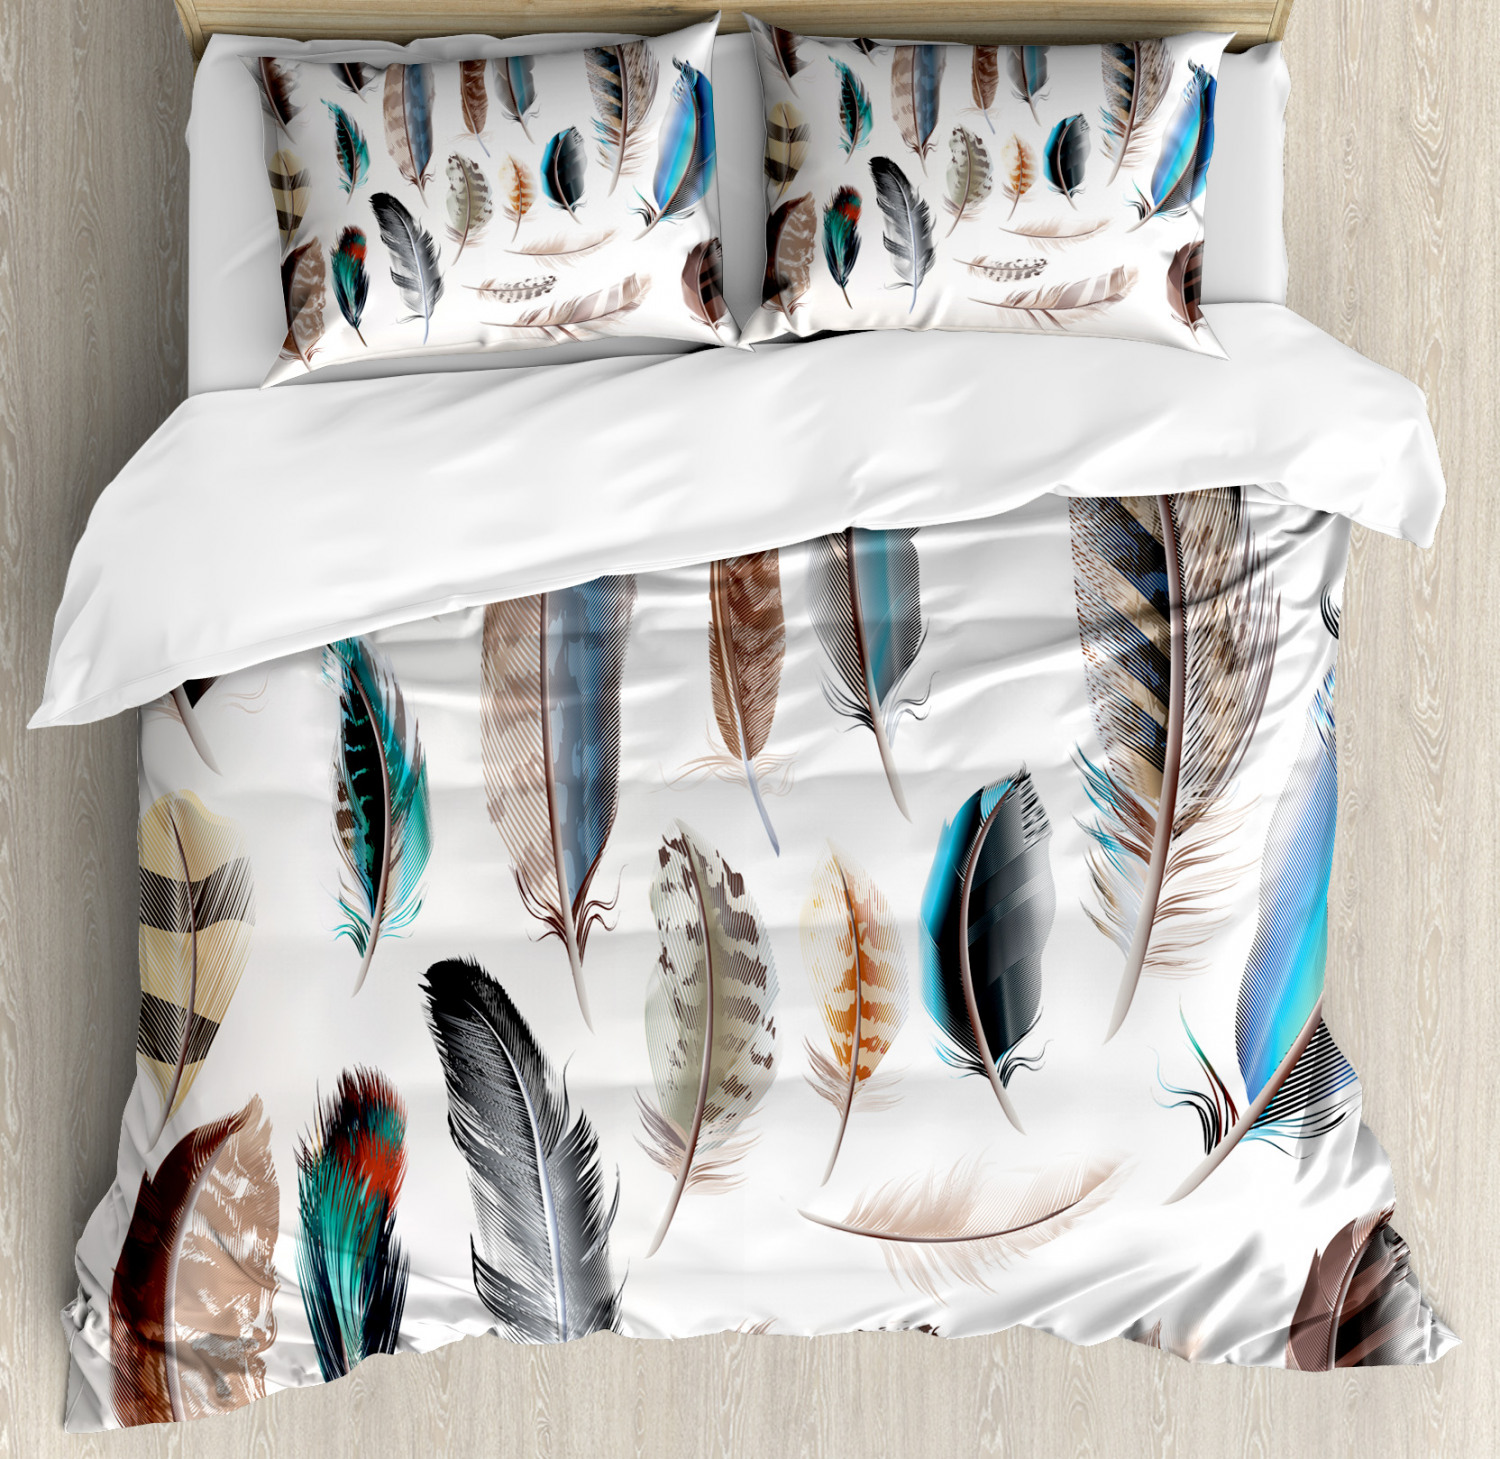 Animal Duvet Cover Set with Pillow Shams Bird Body Feathers